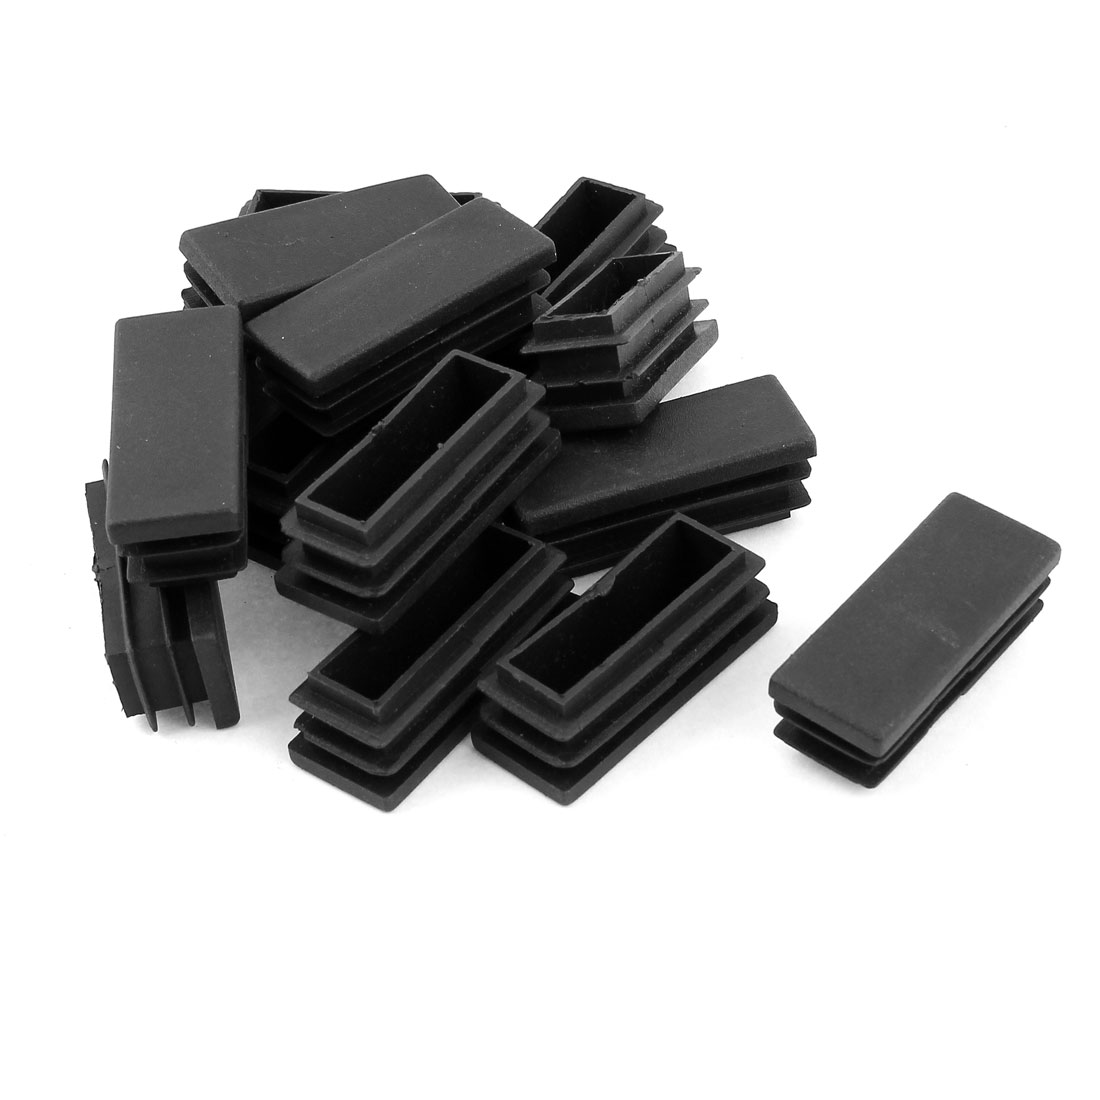 15PCS Black Plastic Rectangle Shape Tube Inserts End Blanking Cap 20mm x 50mm